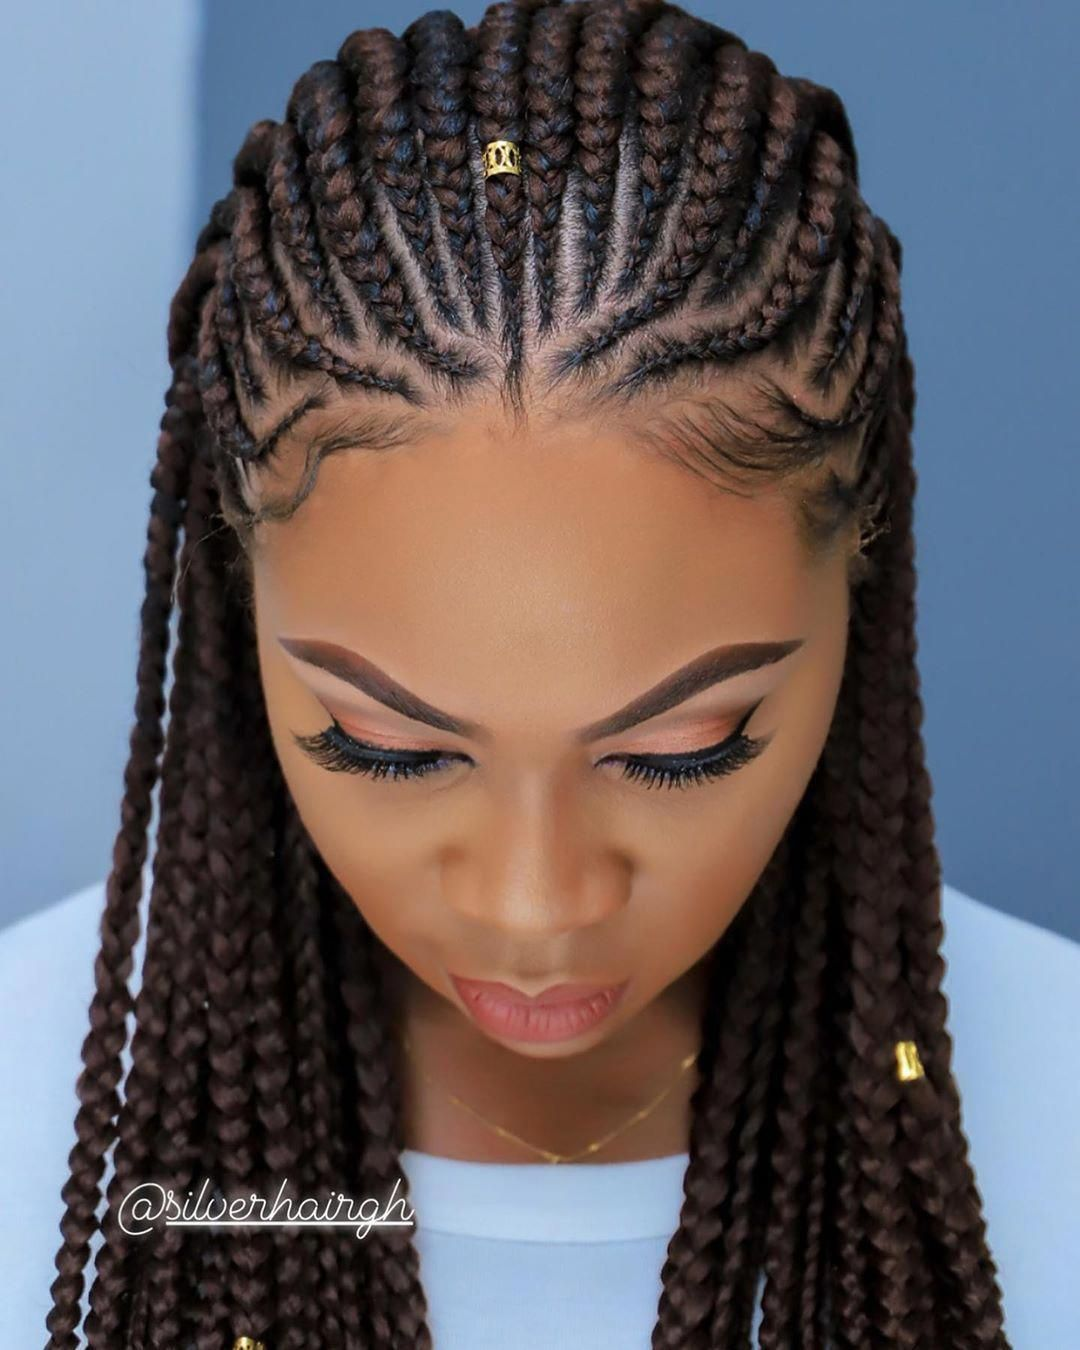 Silverhair Salon And Spa On Instagram Clear View Of This Magic We Created Muse Mi In 2020 Natural Hair Braids African Hair Braiding Styles Braids For Black Hair